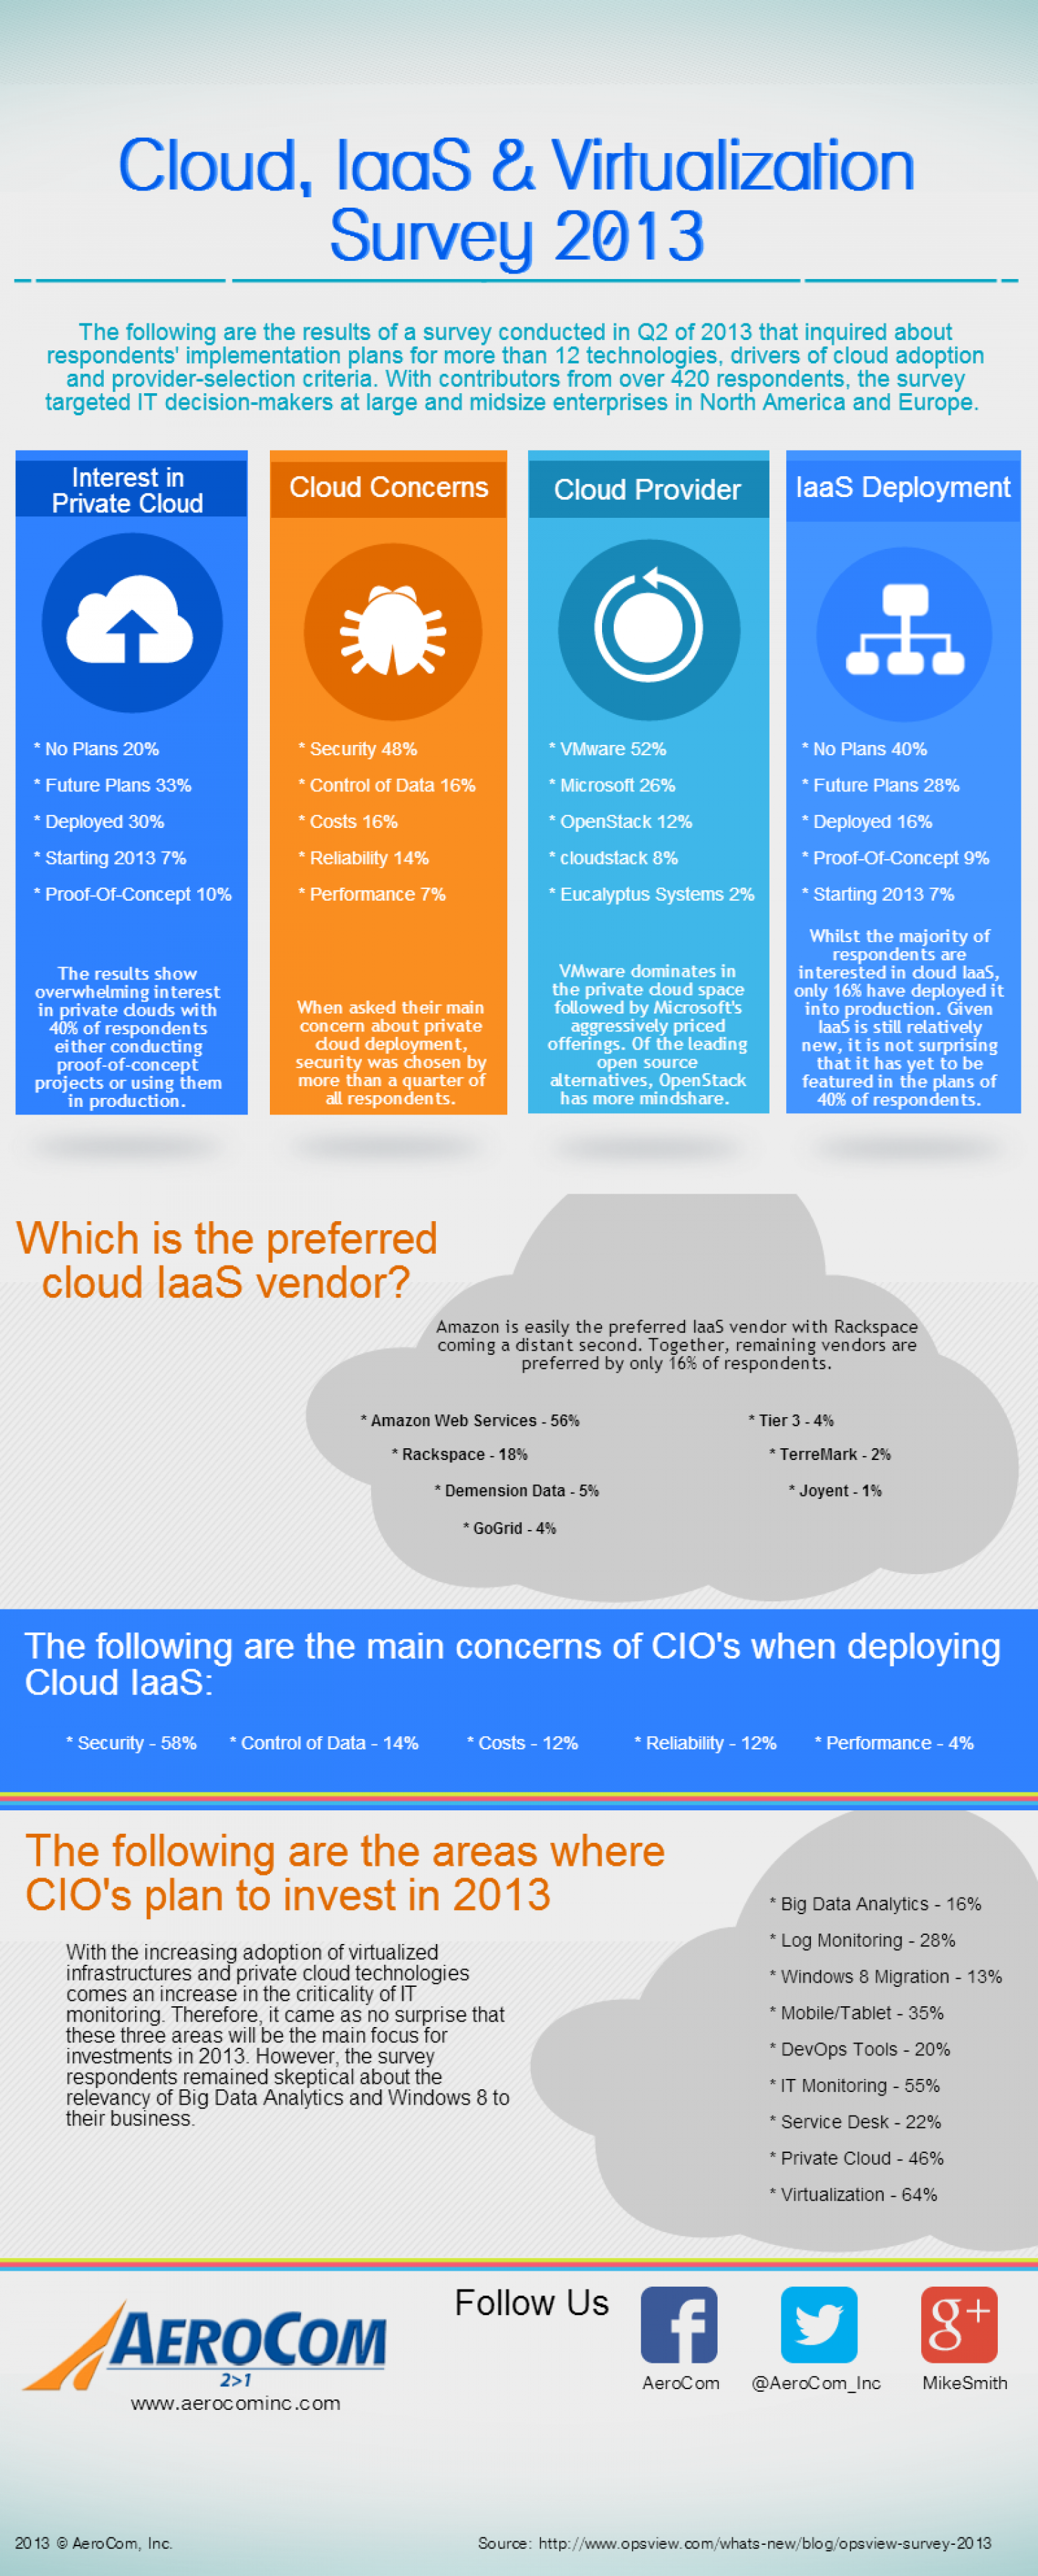 Cloud, IaaS & Virtualization Survey 2013 Infographic